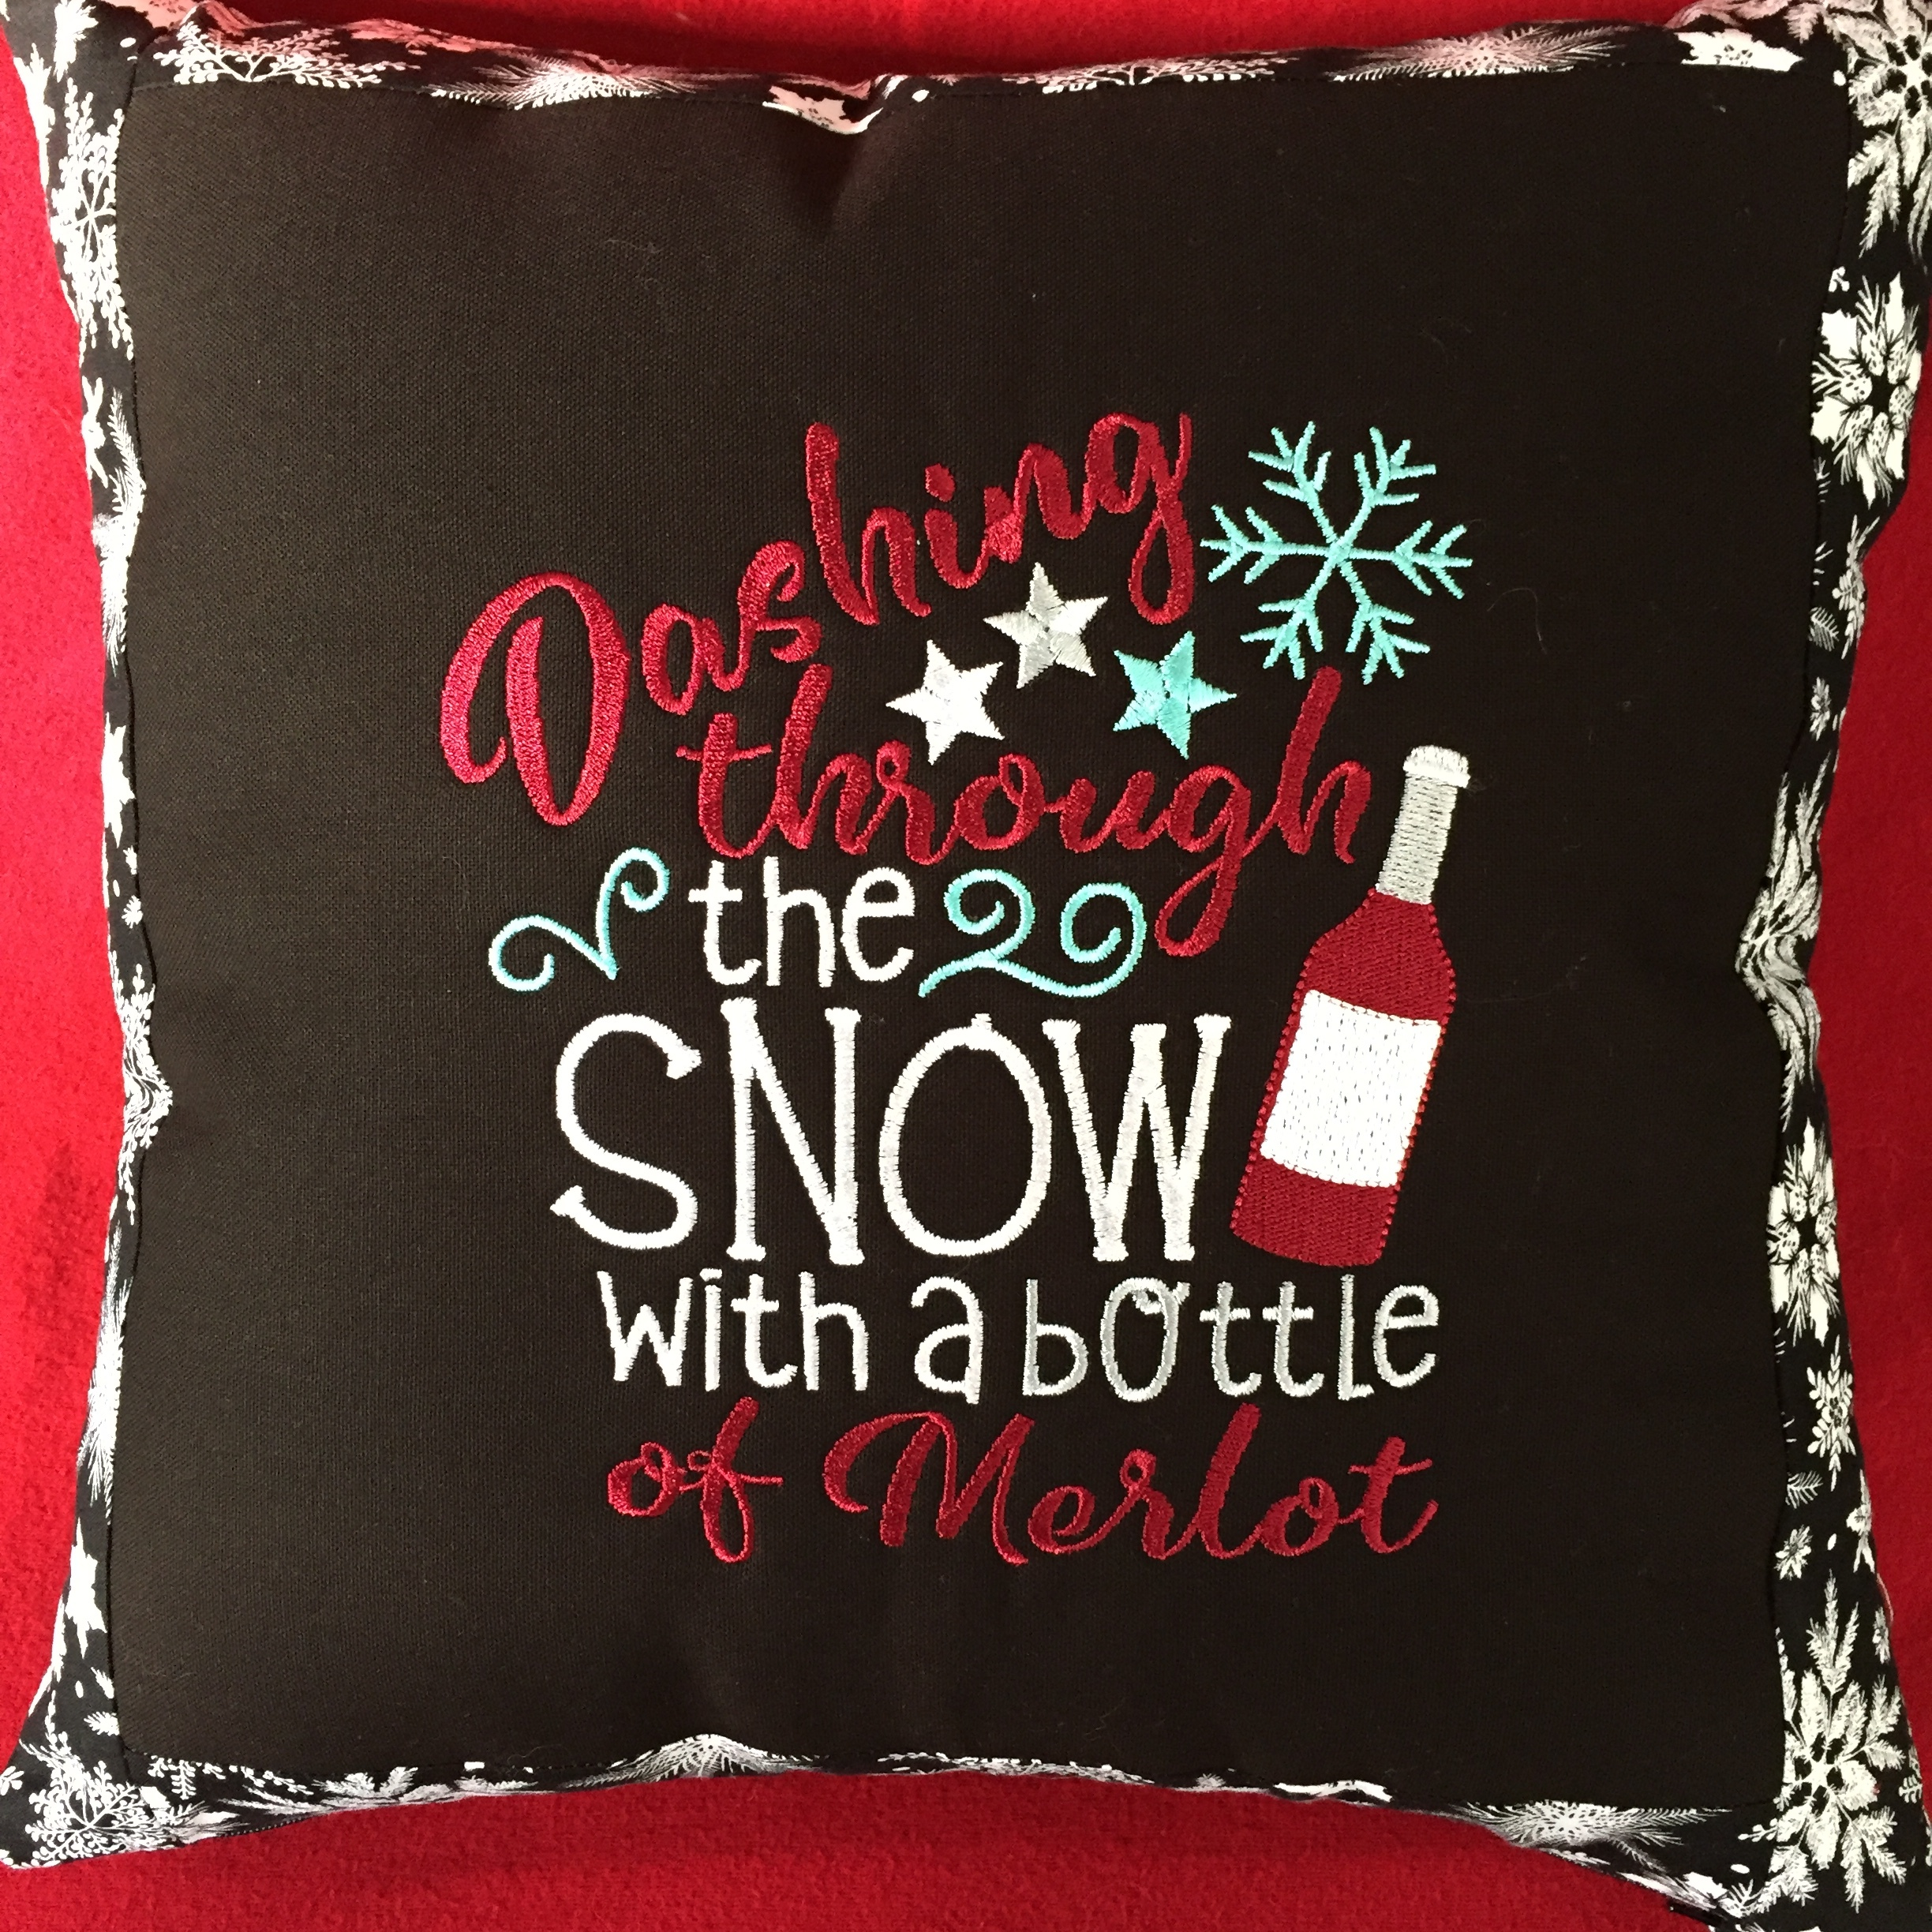 embroidered holiday throw pillow from Bobbins and Needles and Threads, Oh My! ($40 vaule)